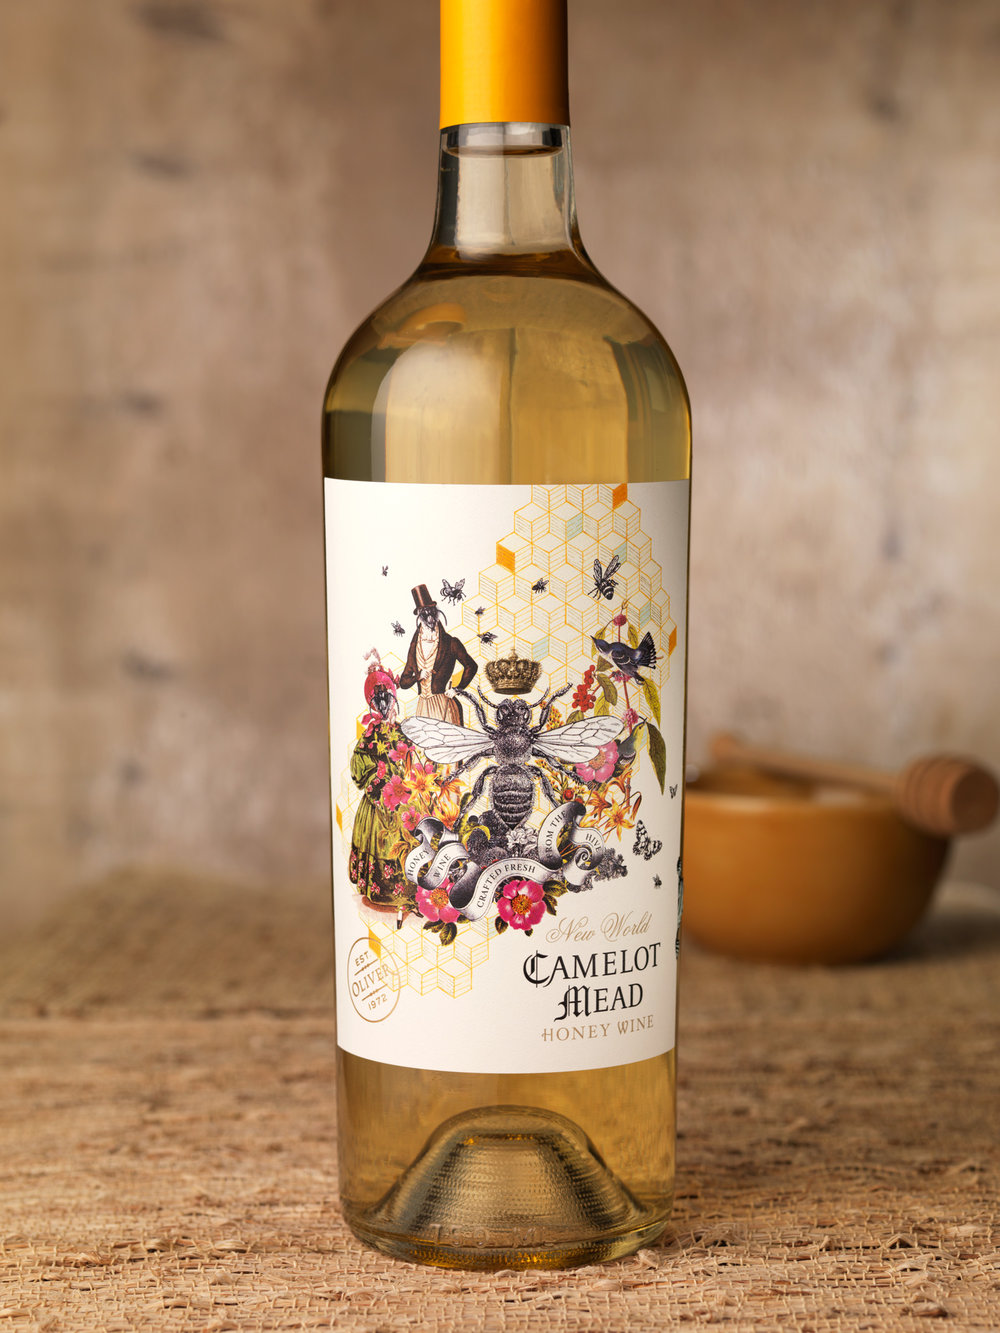 The Unique Collage Of Camelot Mead Honey Wine The